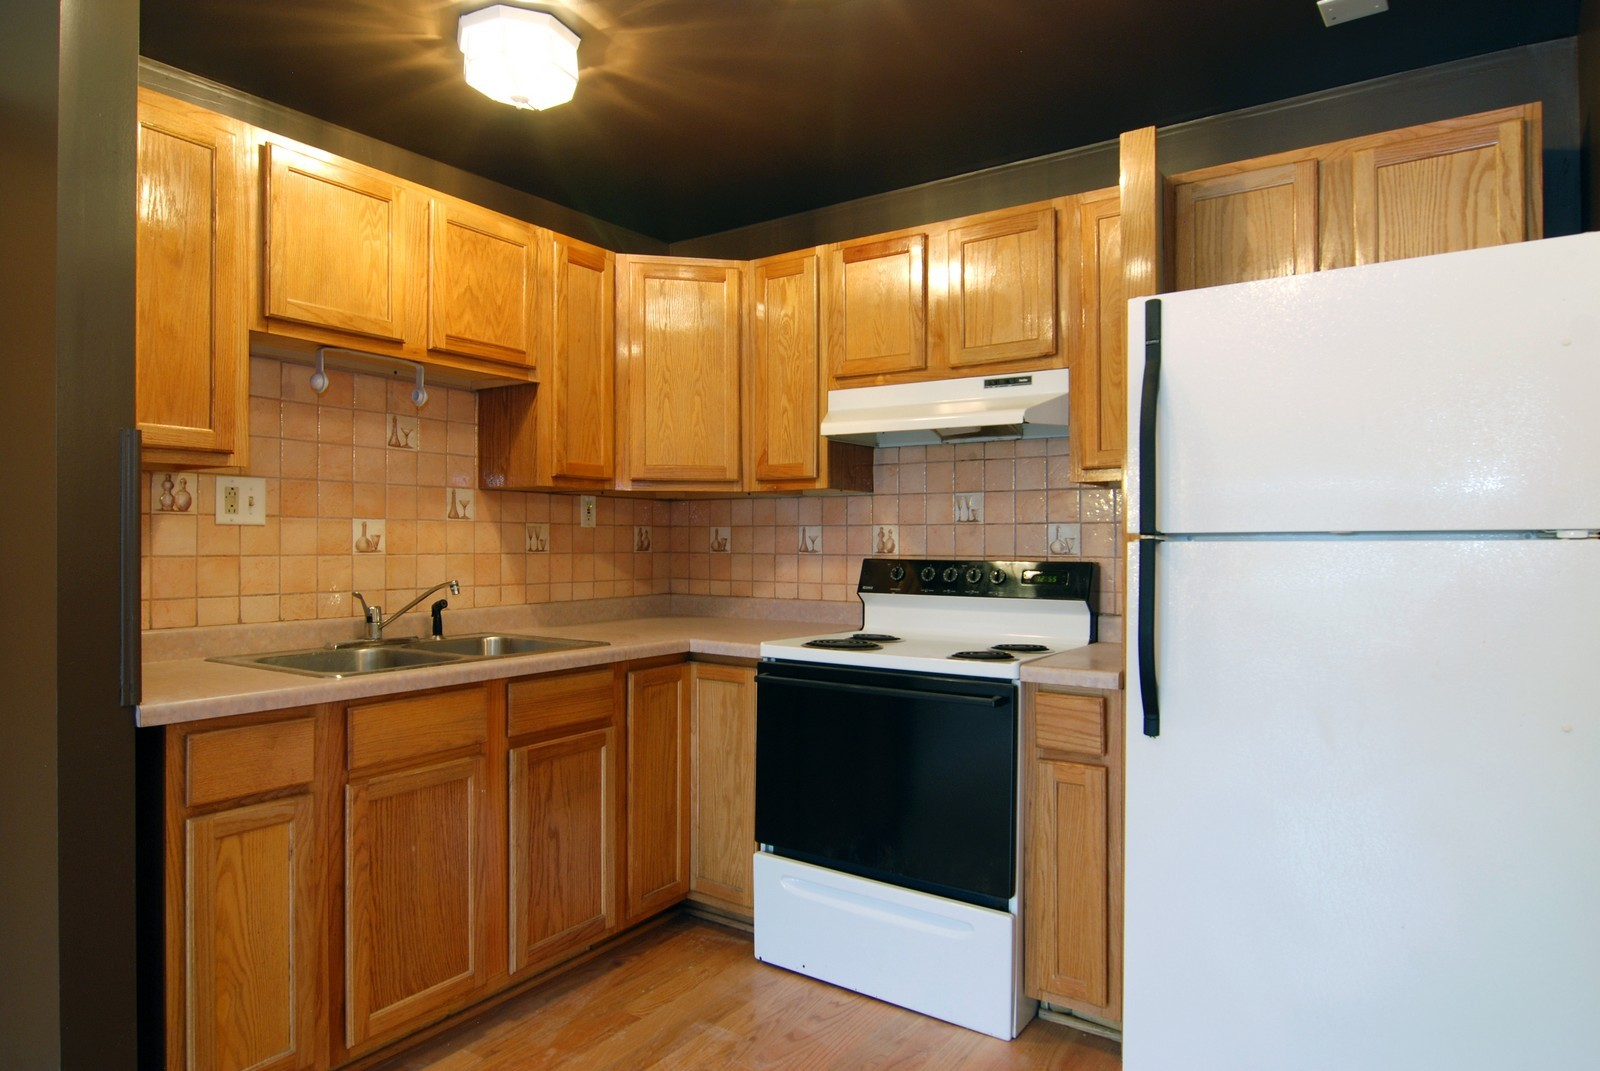 Real Estate Photography - 2839 W Lawrence, Chicago, IL, 60625 - Kitchen